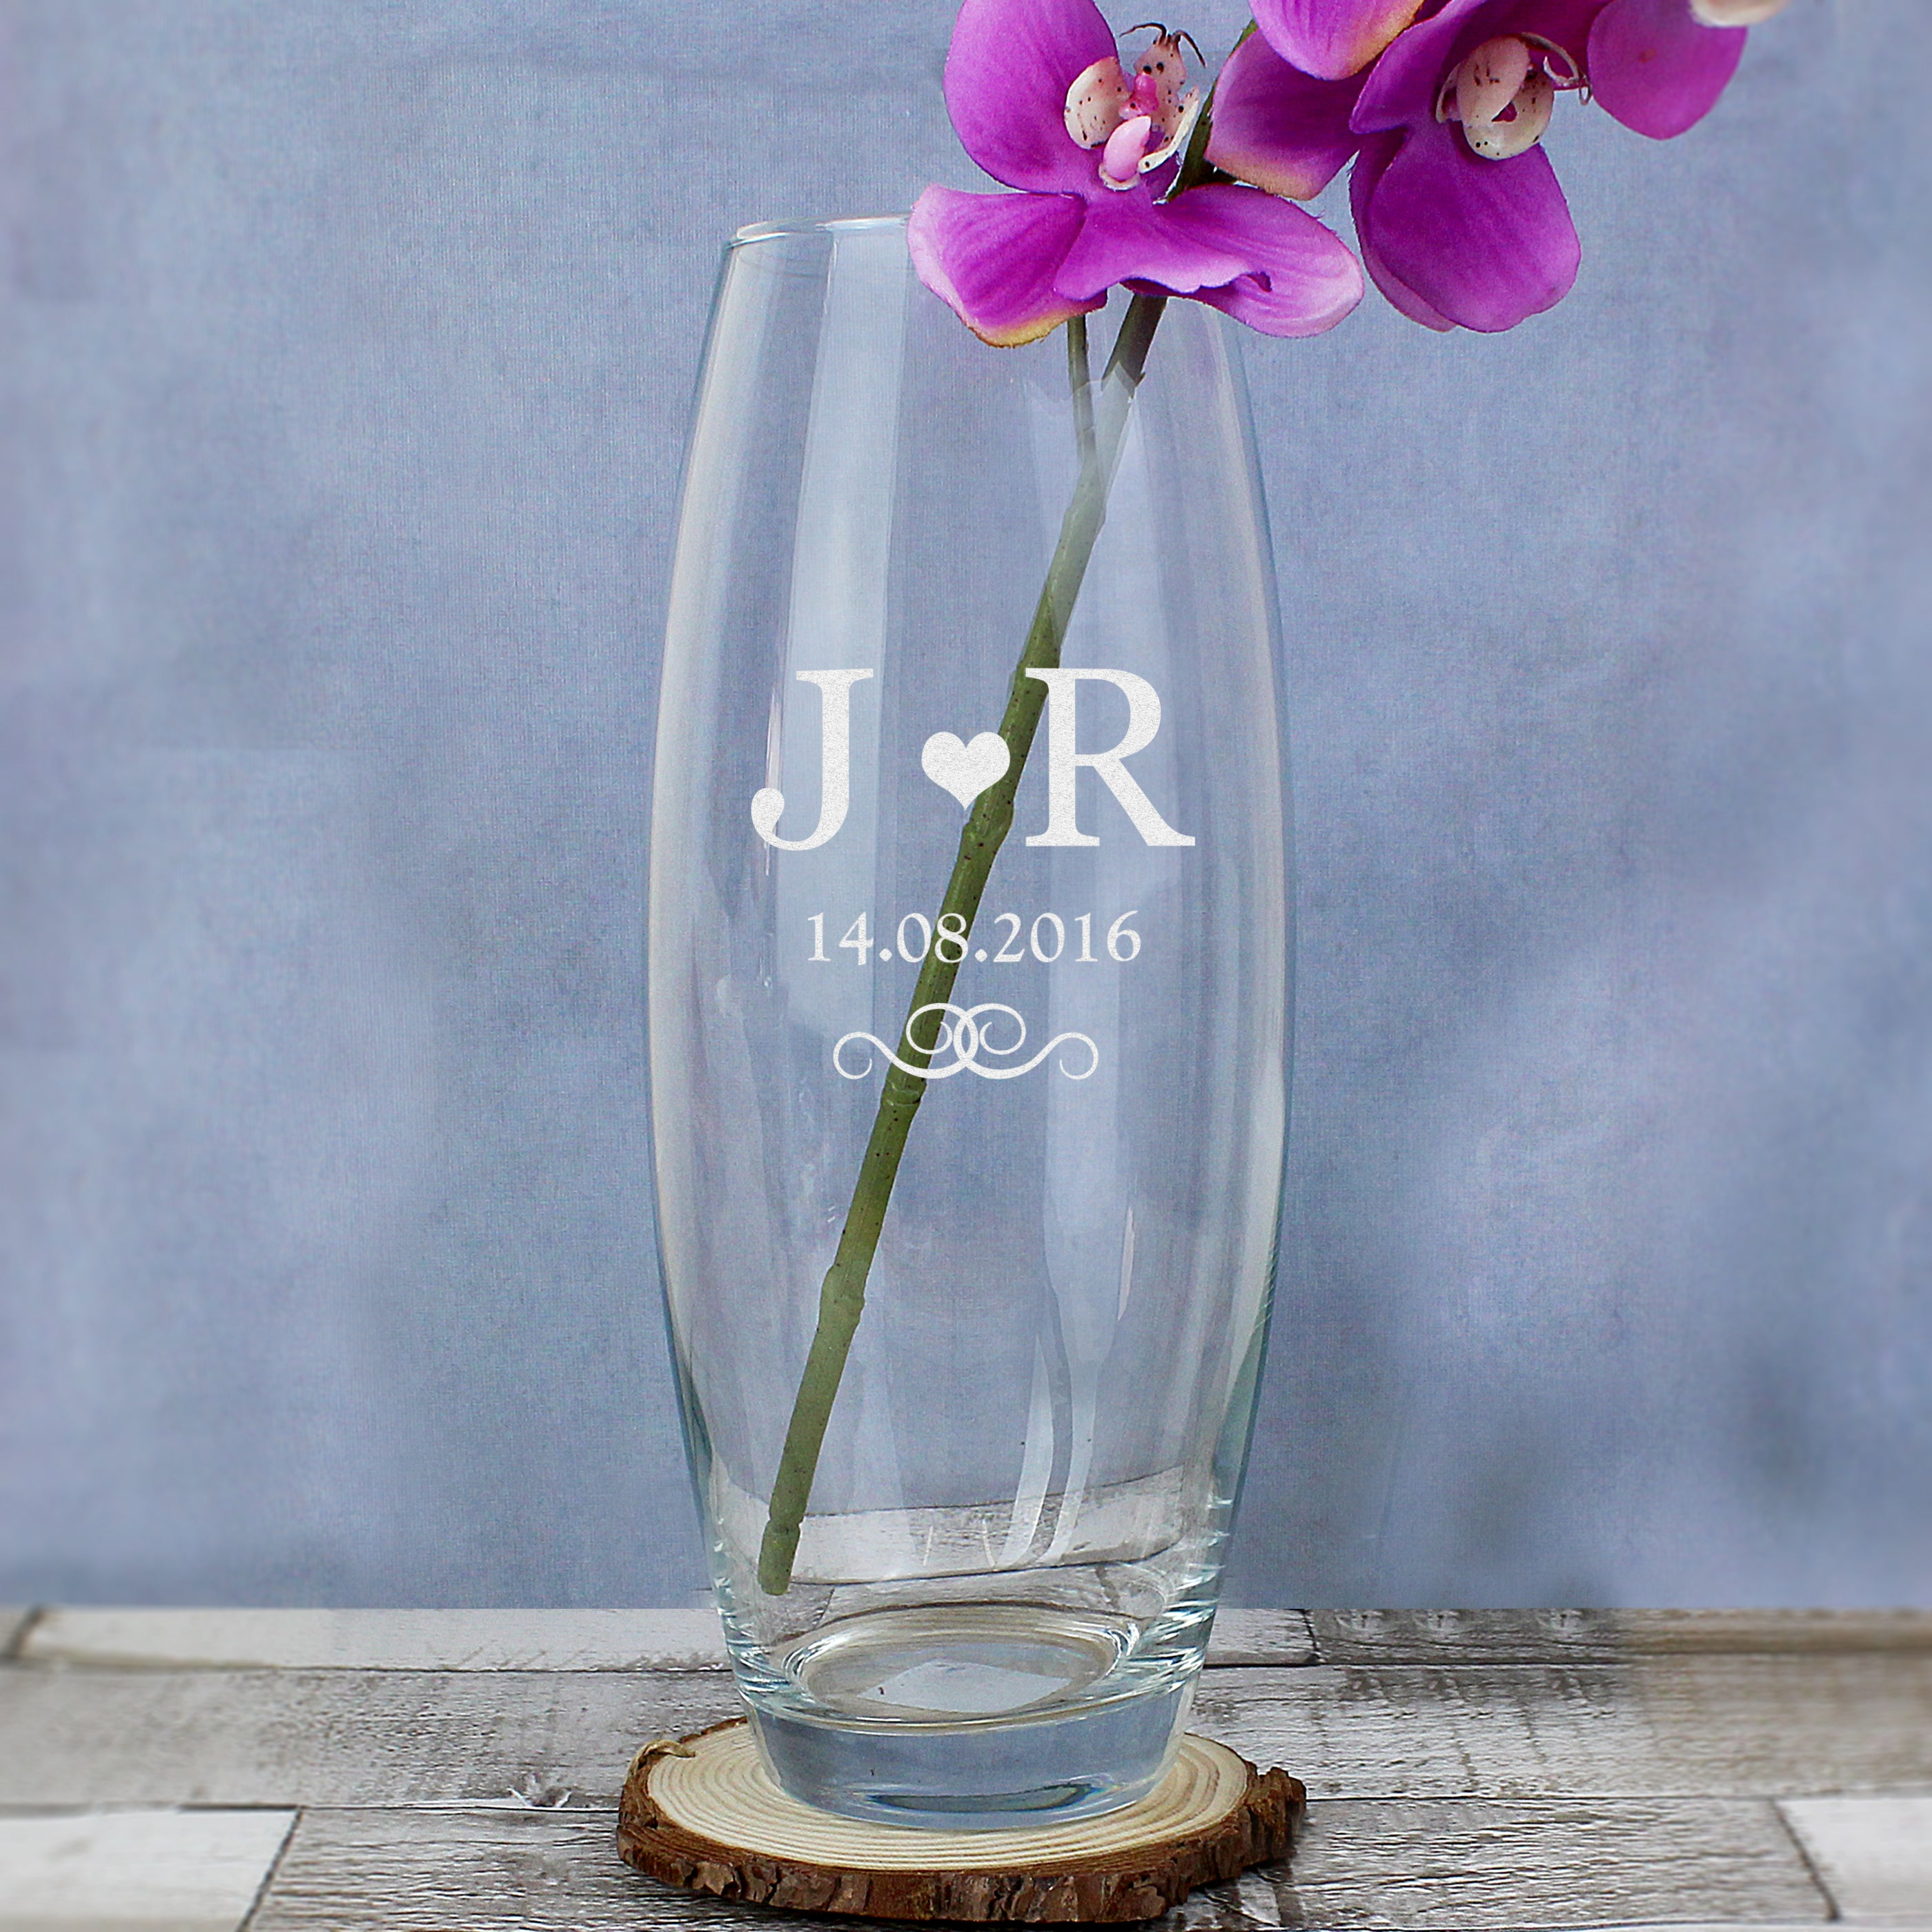 Image of a monogrammed glass bullet vase which can be personalised with 2 initials and a date